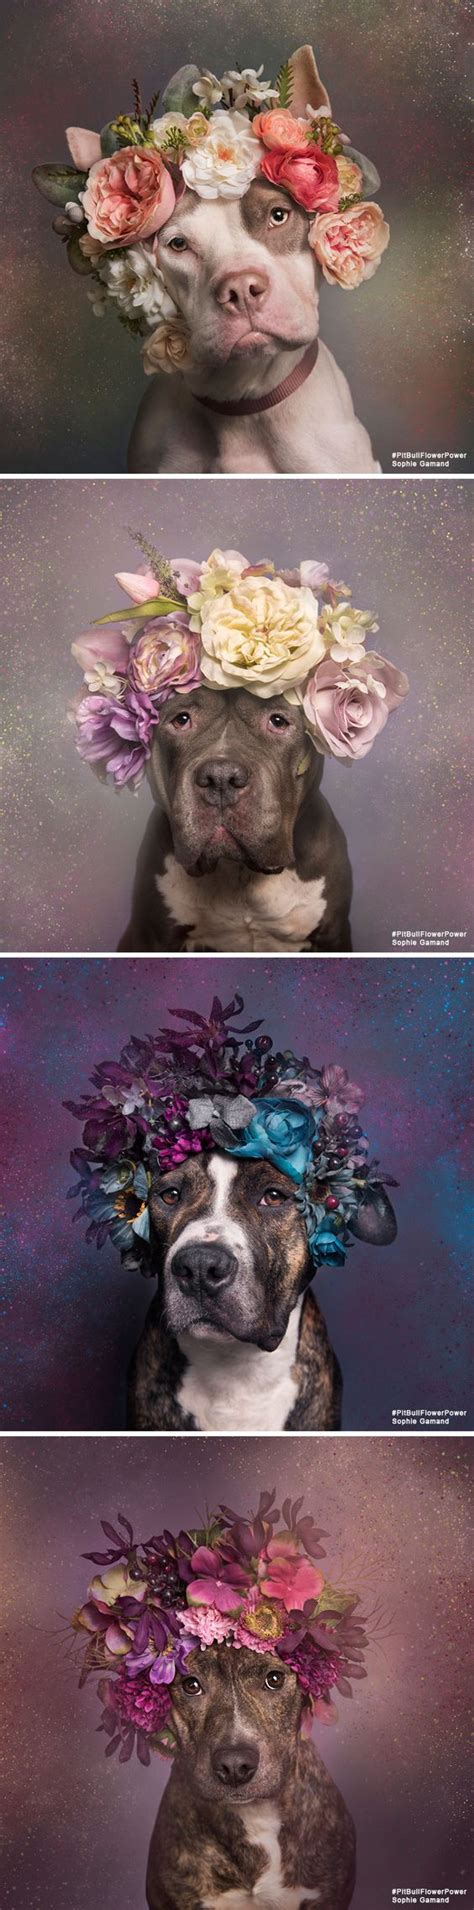 Dogs with flower crowns tumblr izmirmasajfo